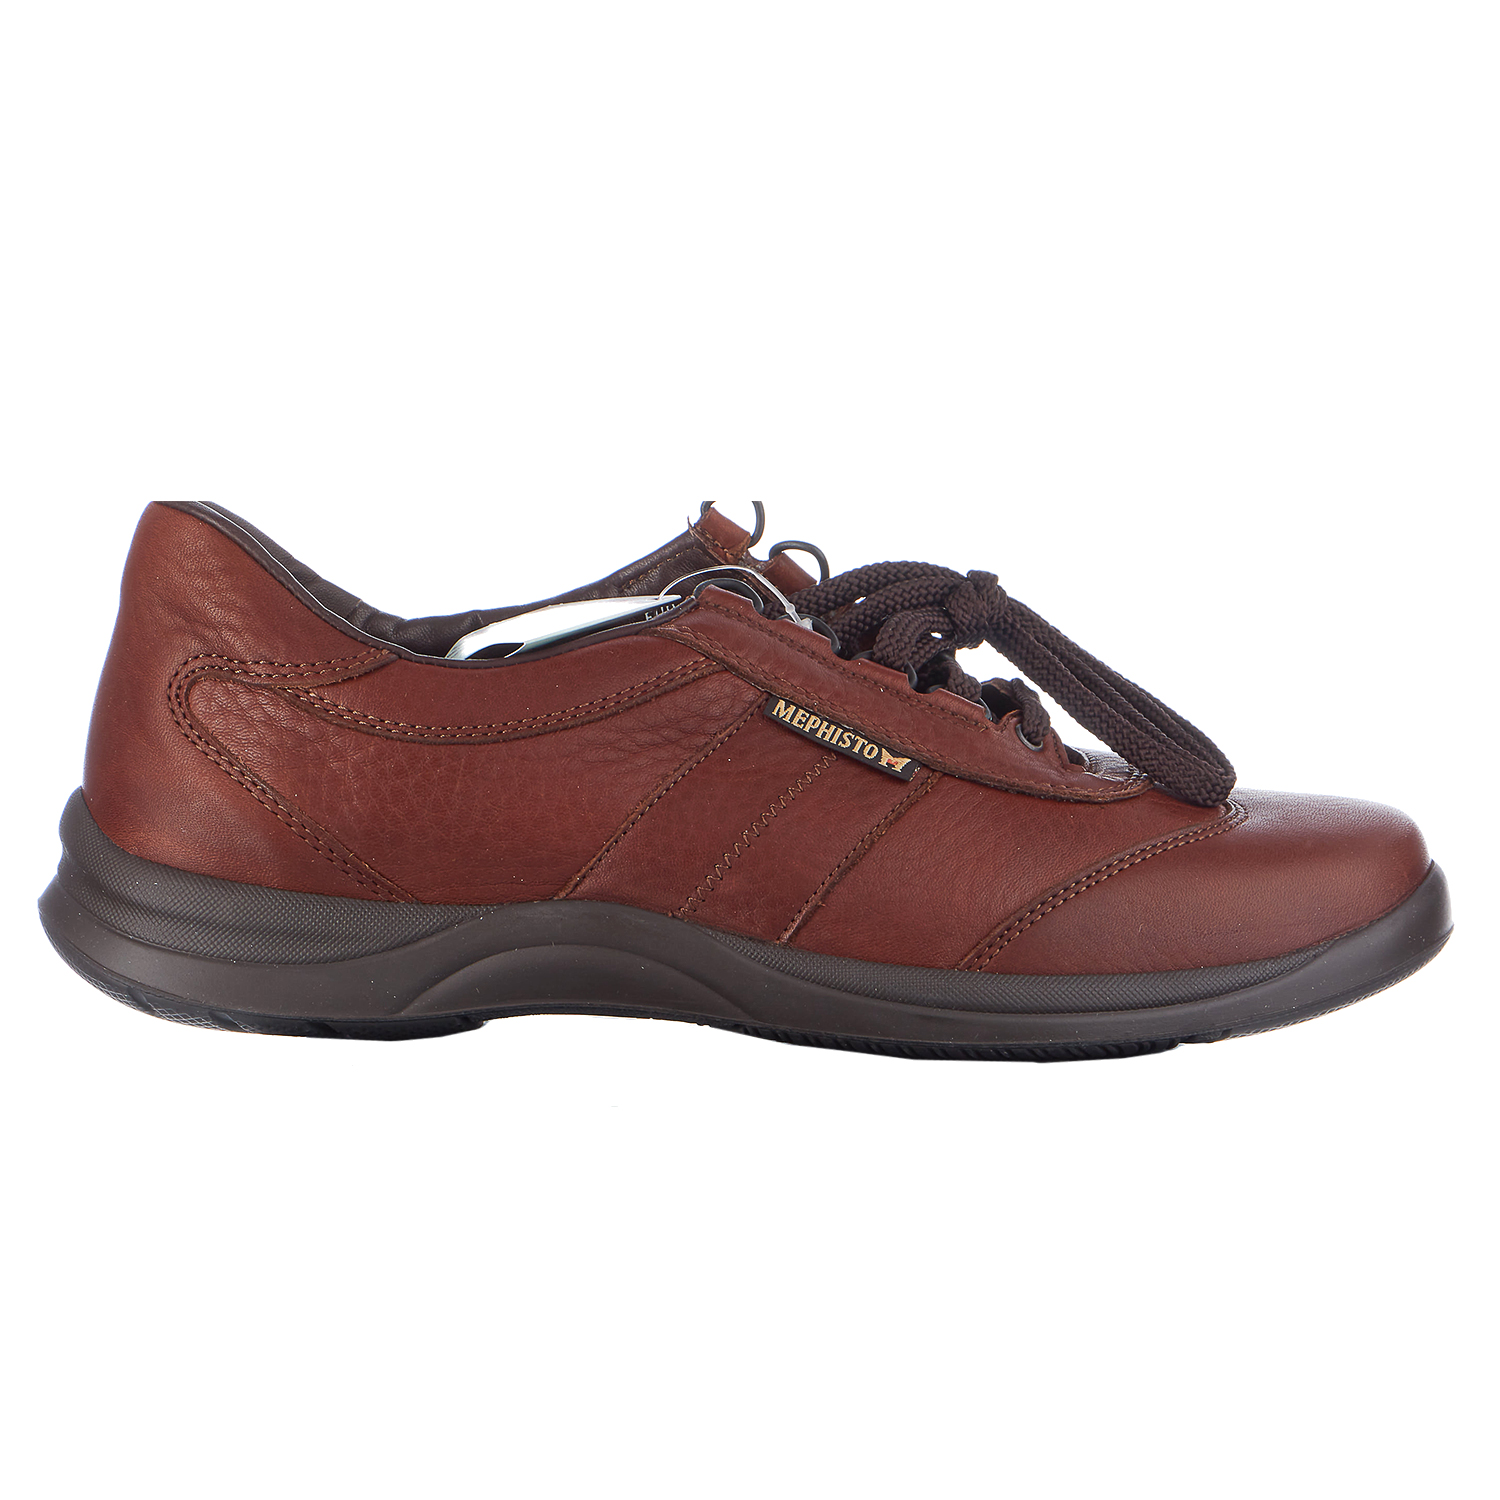 Mephisto Hike Walking Hiking Sneaker Casual Oxford Shoe Mens by Mephisto